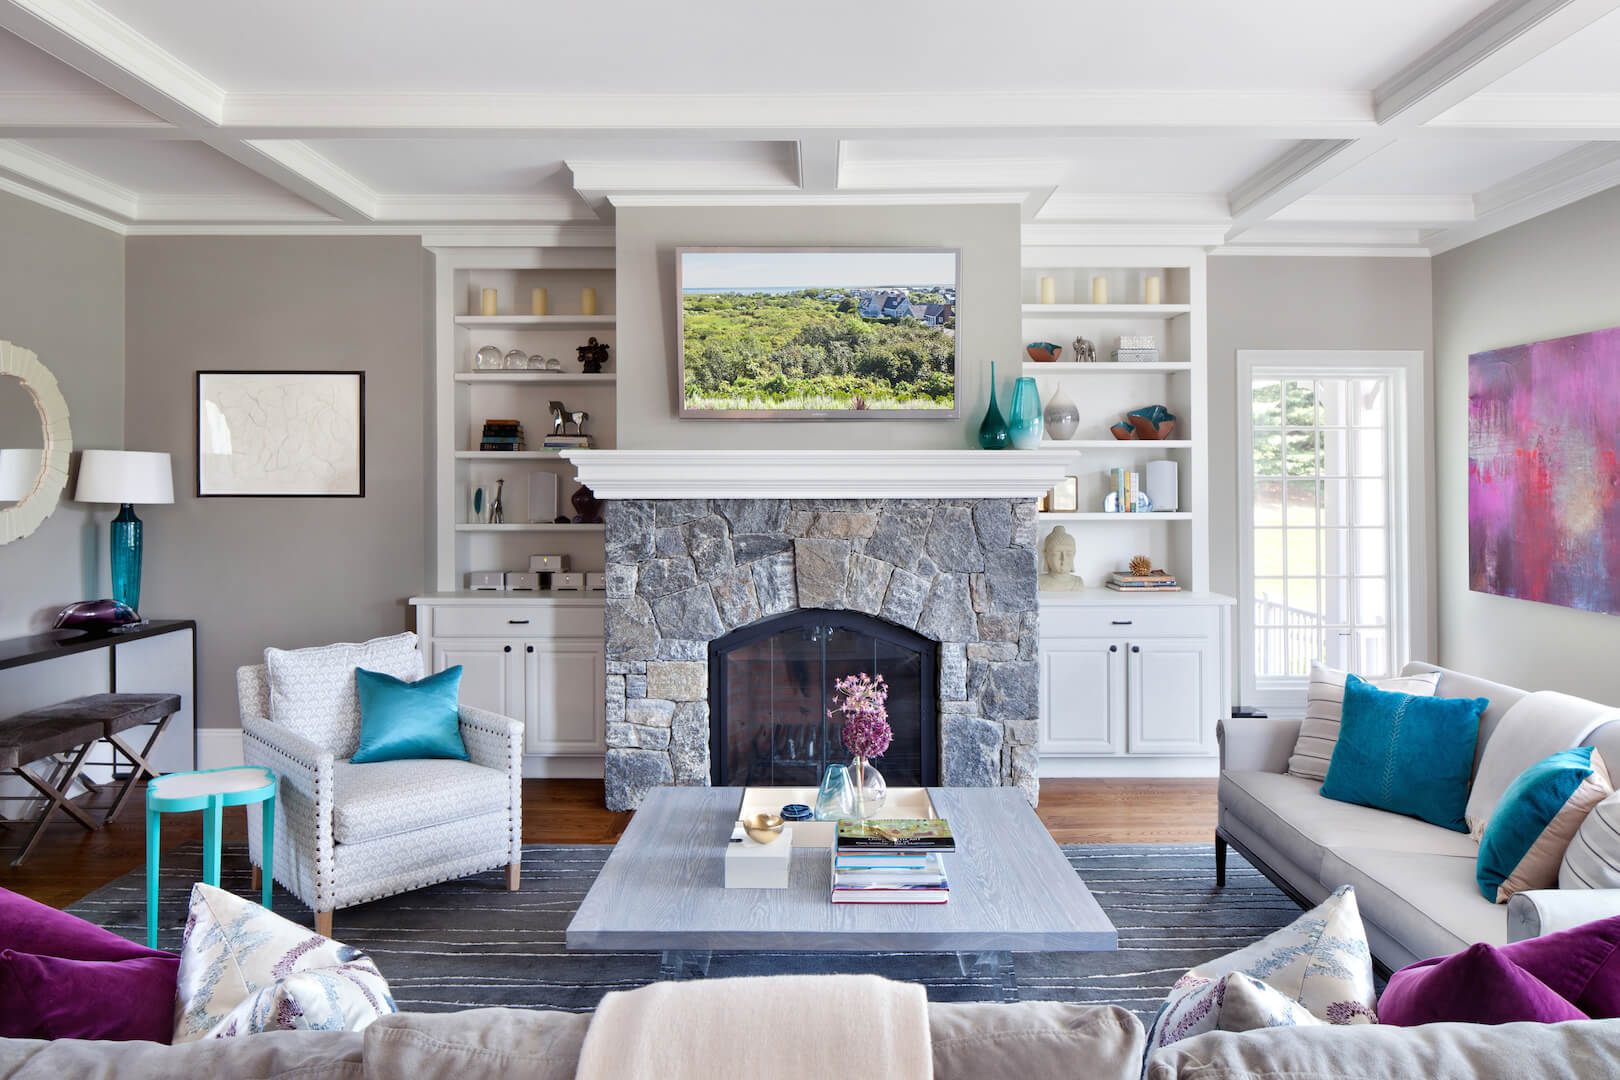 Another shot of the living room featuring the stone fireplace and built-in bookcases on either side of the fireplace. The striped dusky blue rug beneath the periwinkle coffee table contrasts nicely with the other shades of blue in this living room.